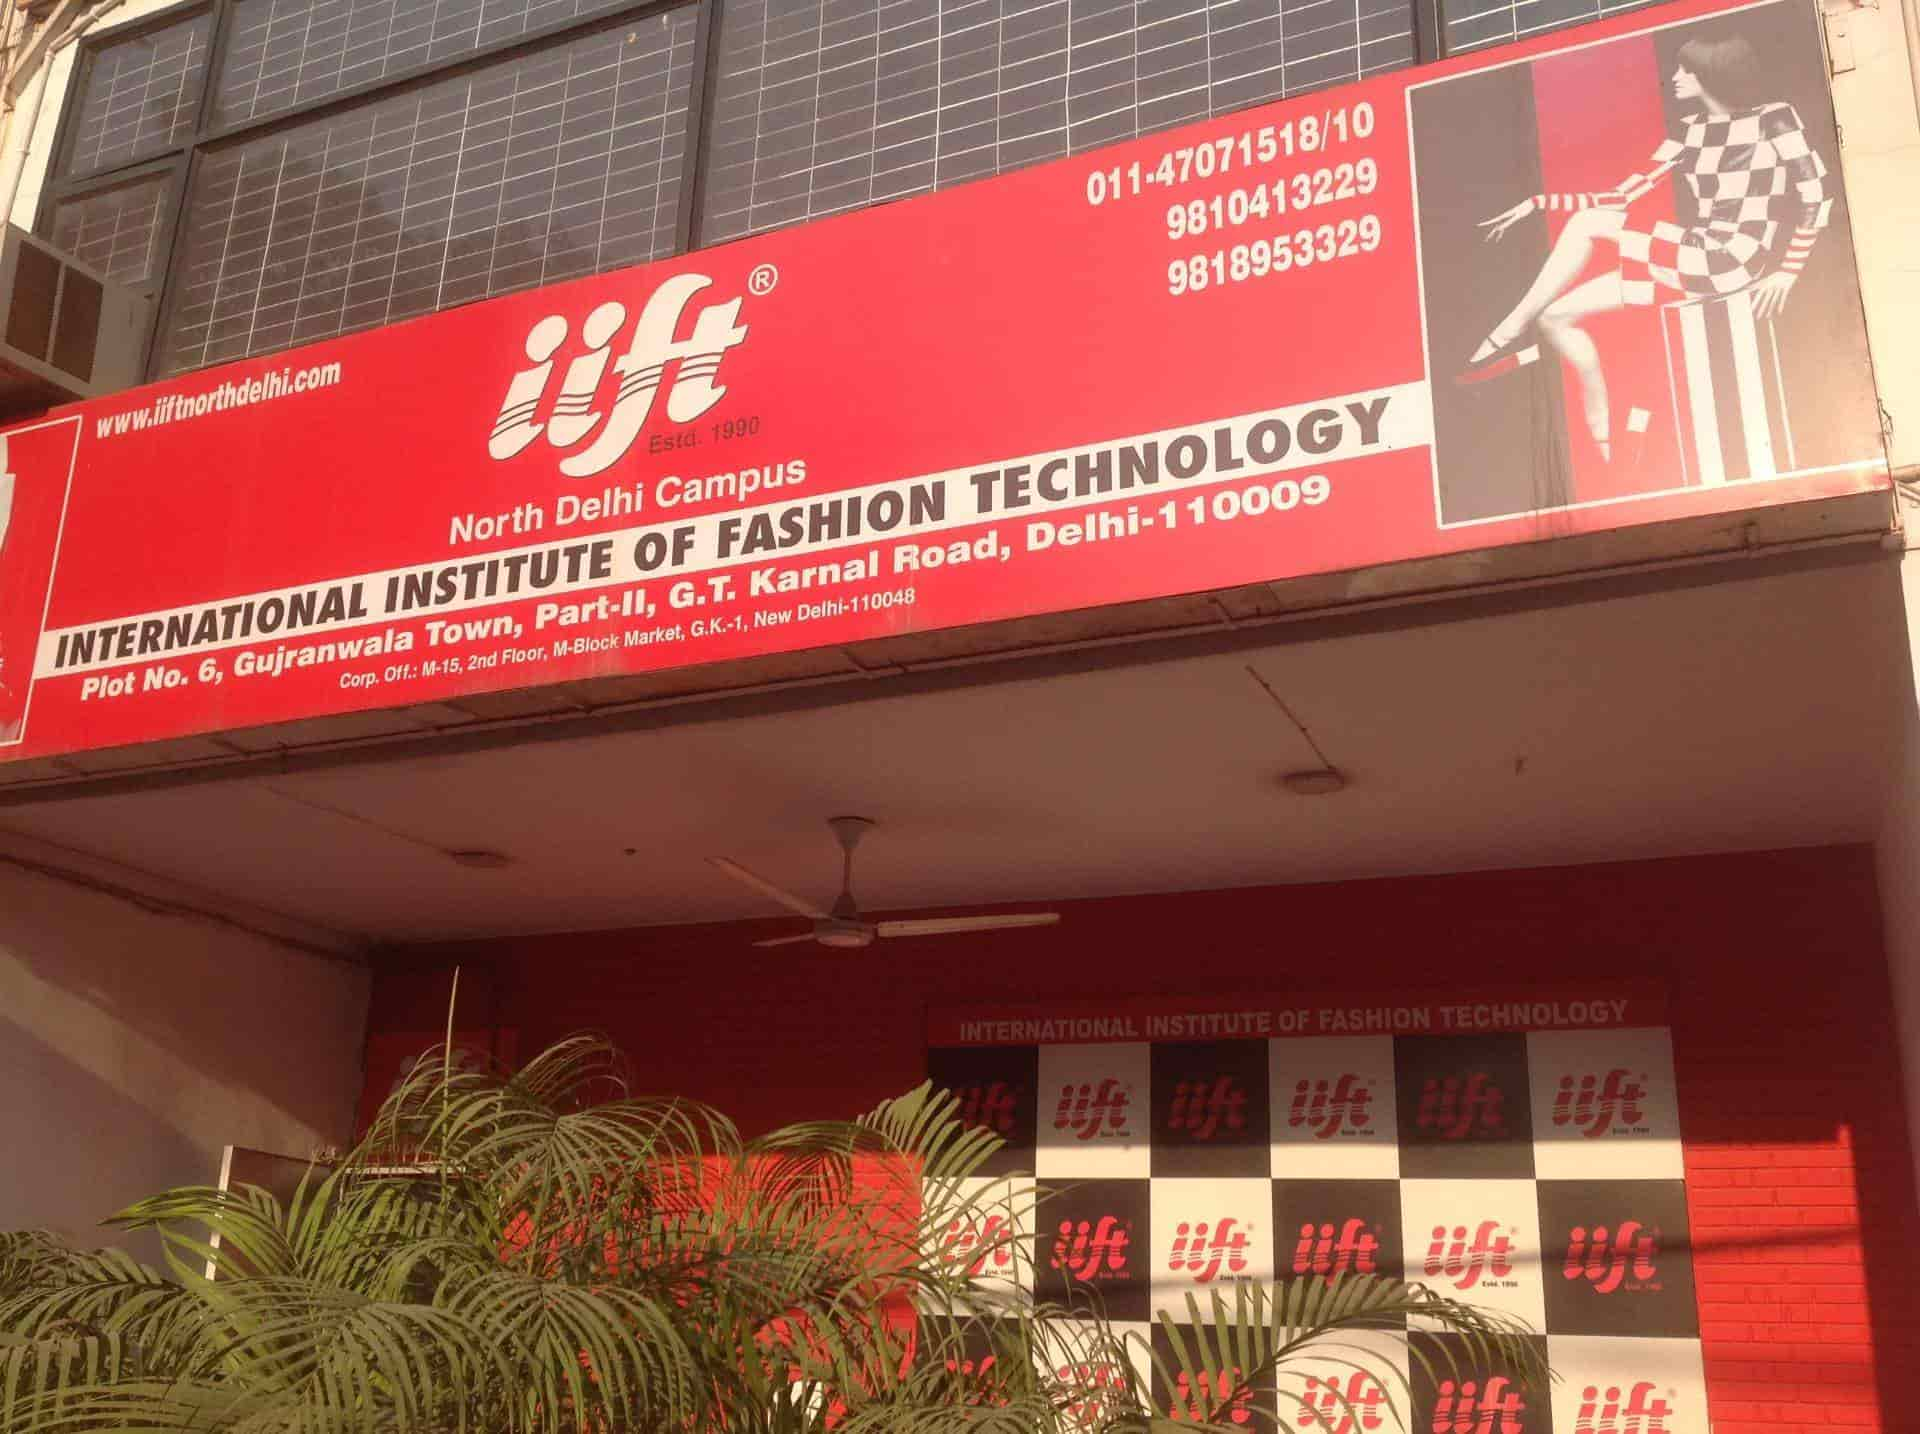 Iift North Delhi Campus Gujranwala Town Fashion Designing Institutes In Delhi Justdial